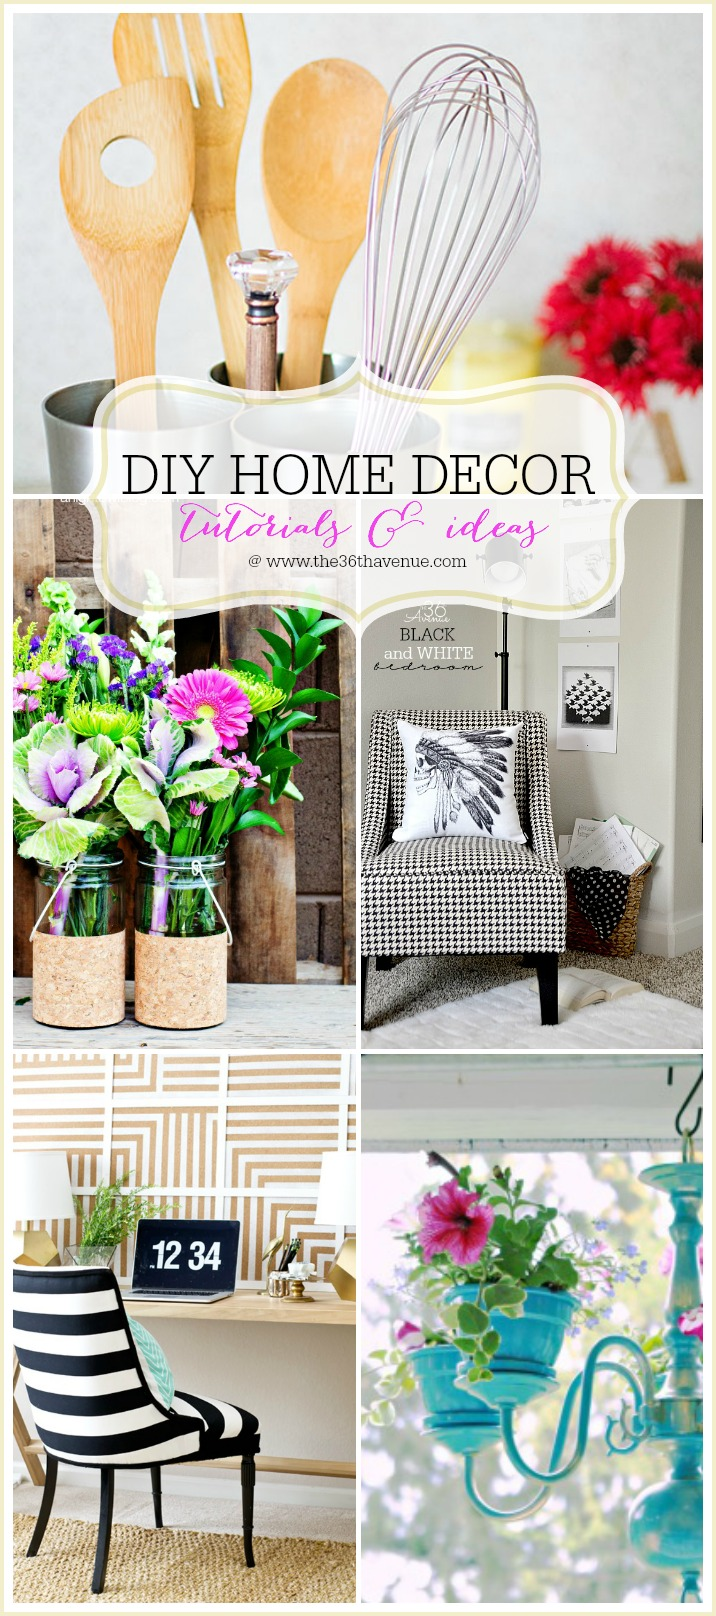 The 36th avenue home decor diy projects the 36th avenue for Home and decor ideas